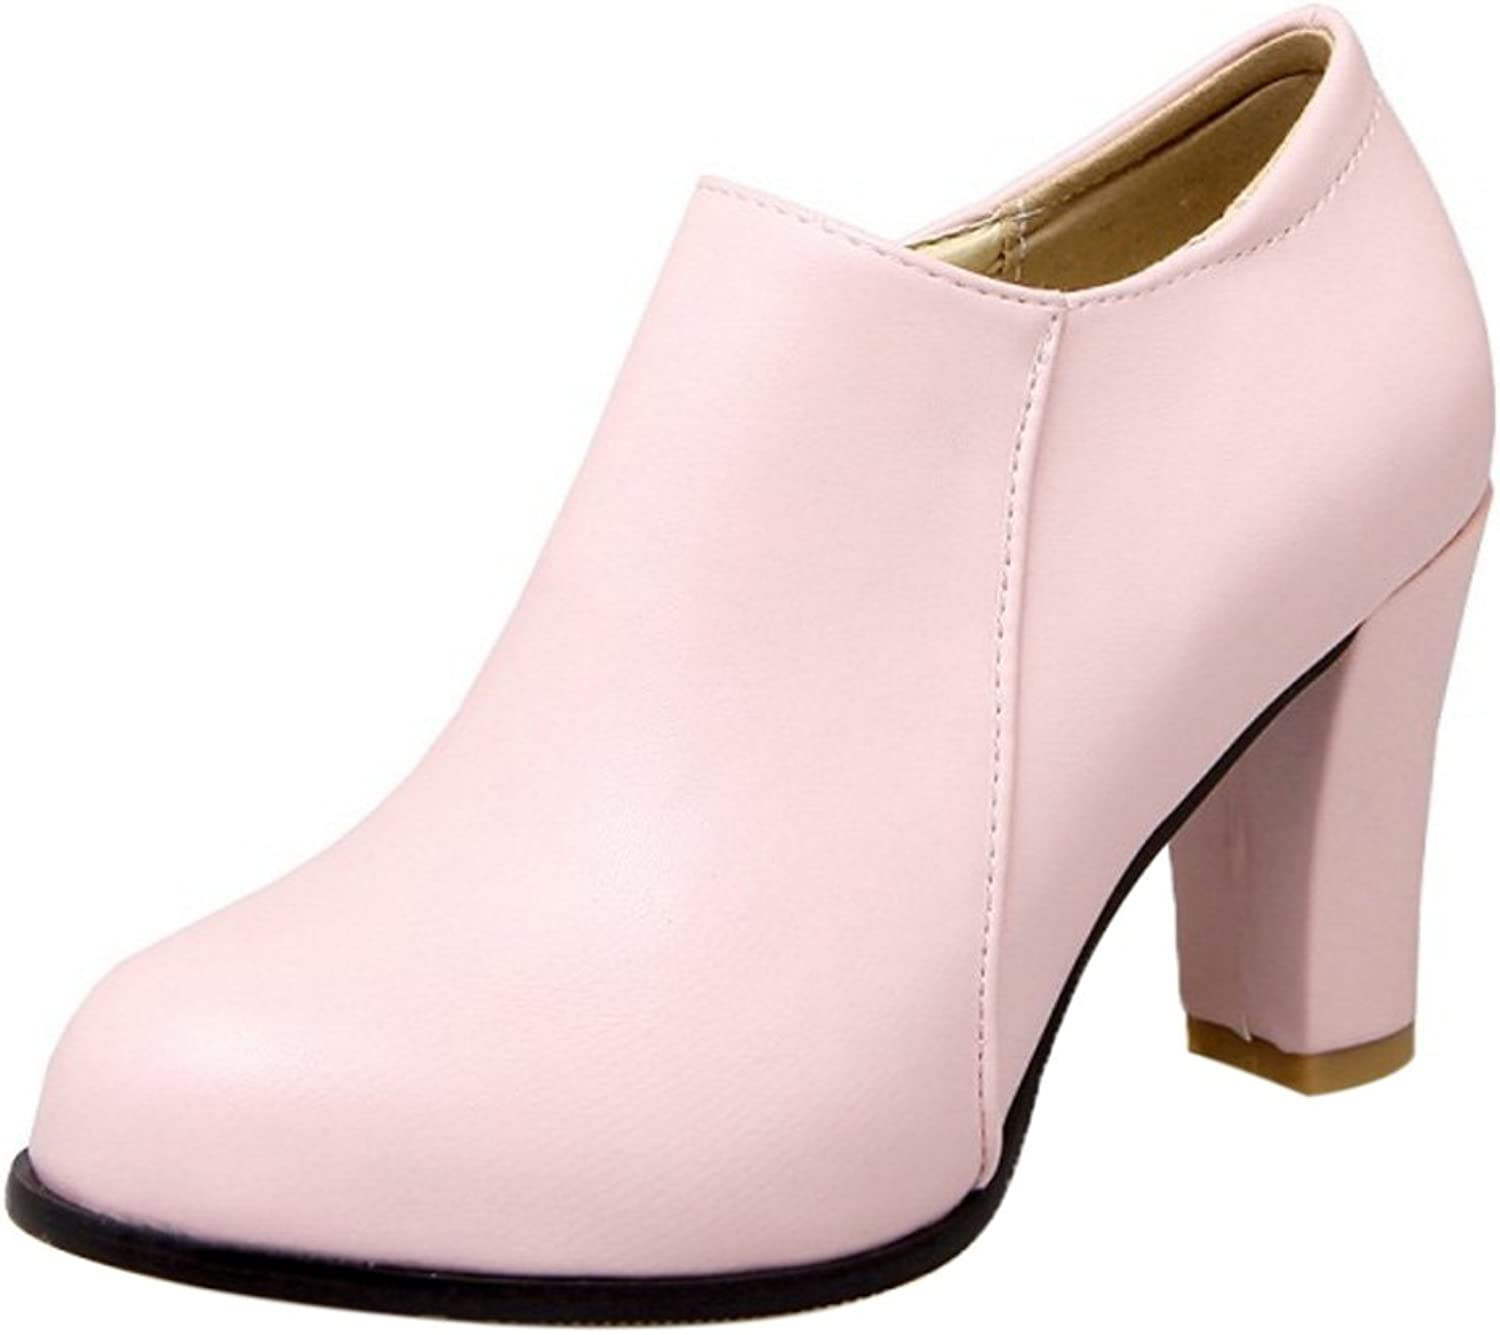 CarziCuzin Women Solid Block Heel Short Boots Round Toe Pink Size 33 Asian